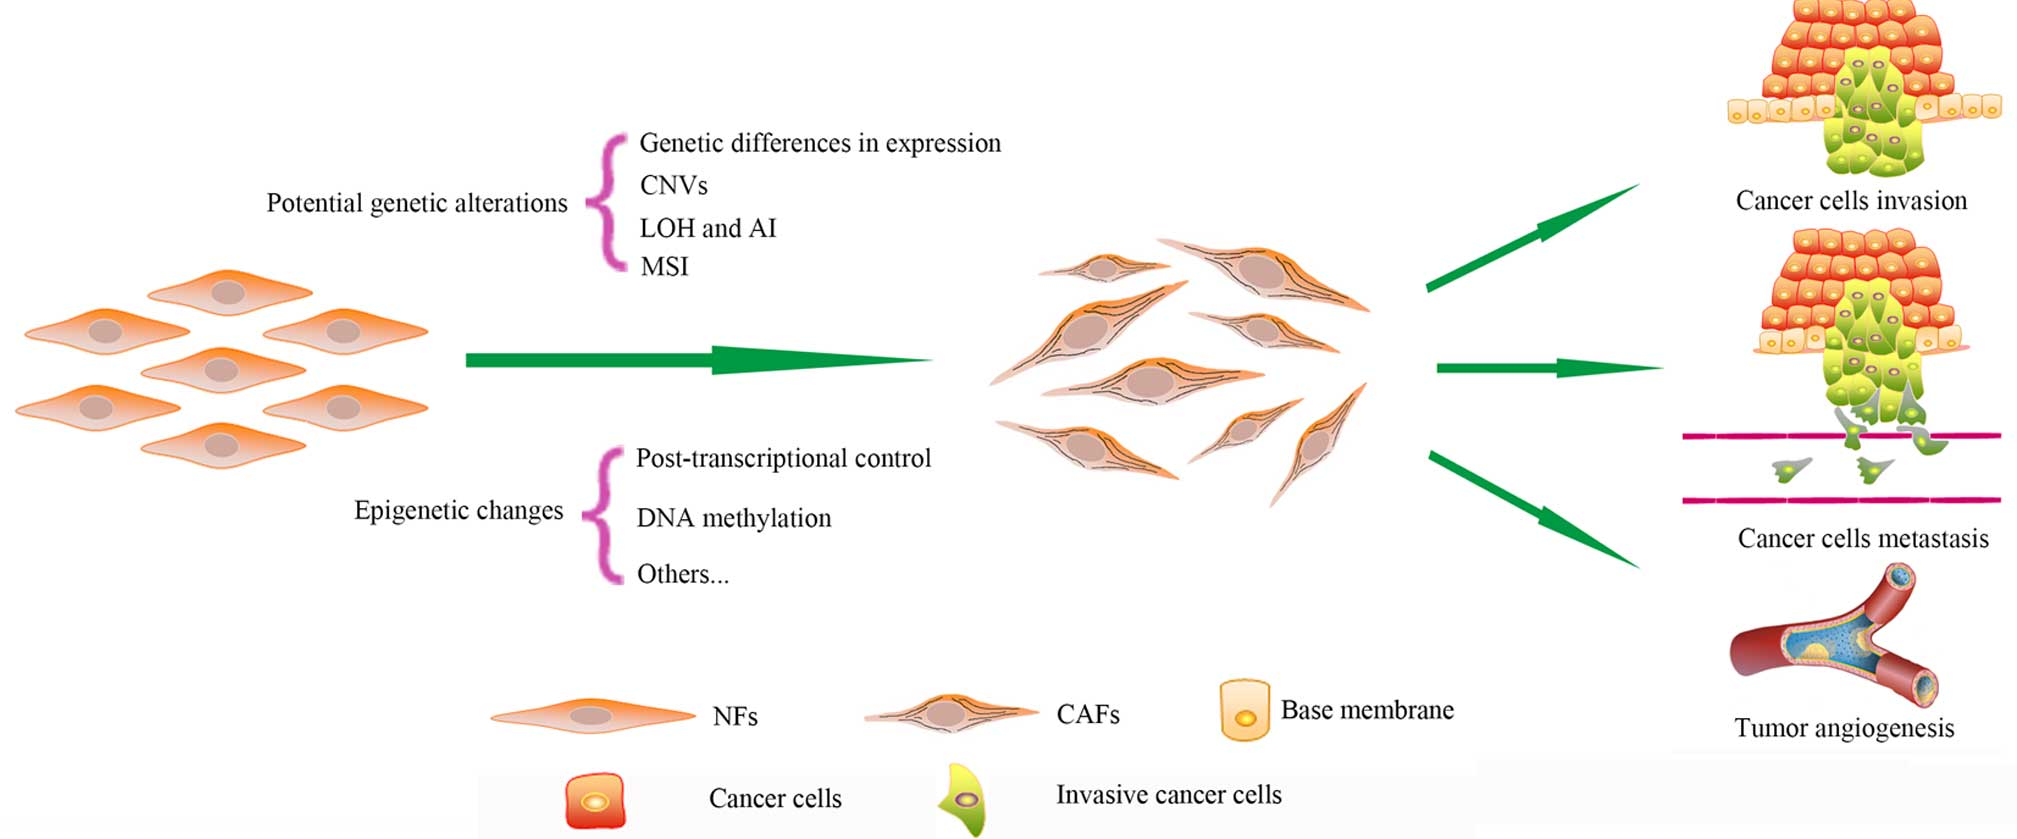 Genetic Alterations And Epigenetic Of Cancerassociated Ih 574 Wiring Circuit Diagram Figure 1 Changes In Cafs Compared To Nfs Possess Numerous Types Potential